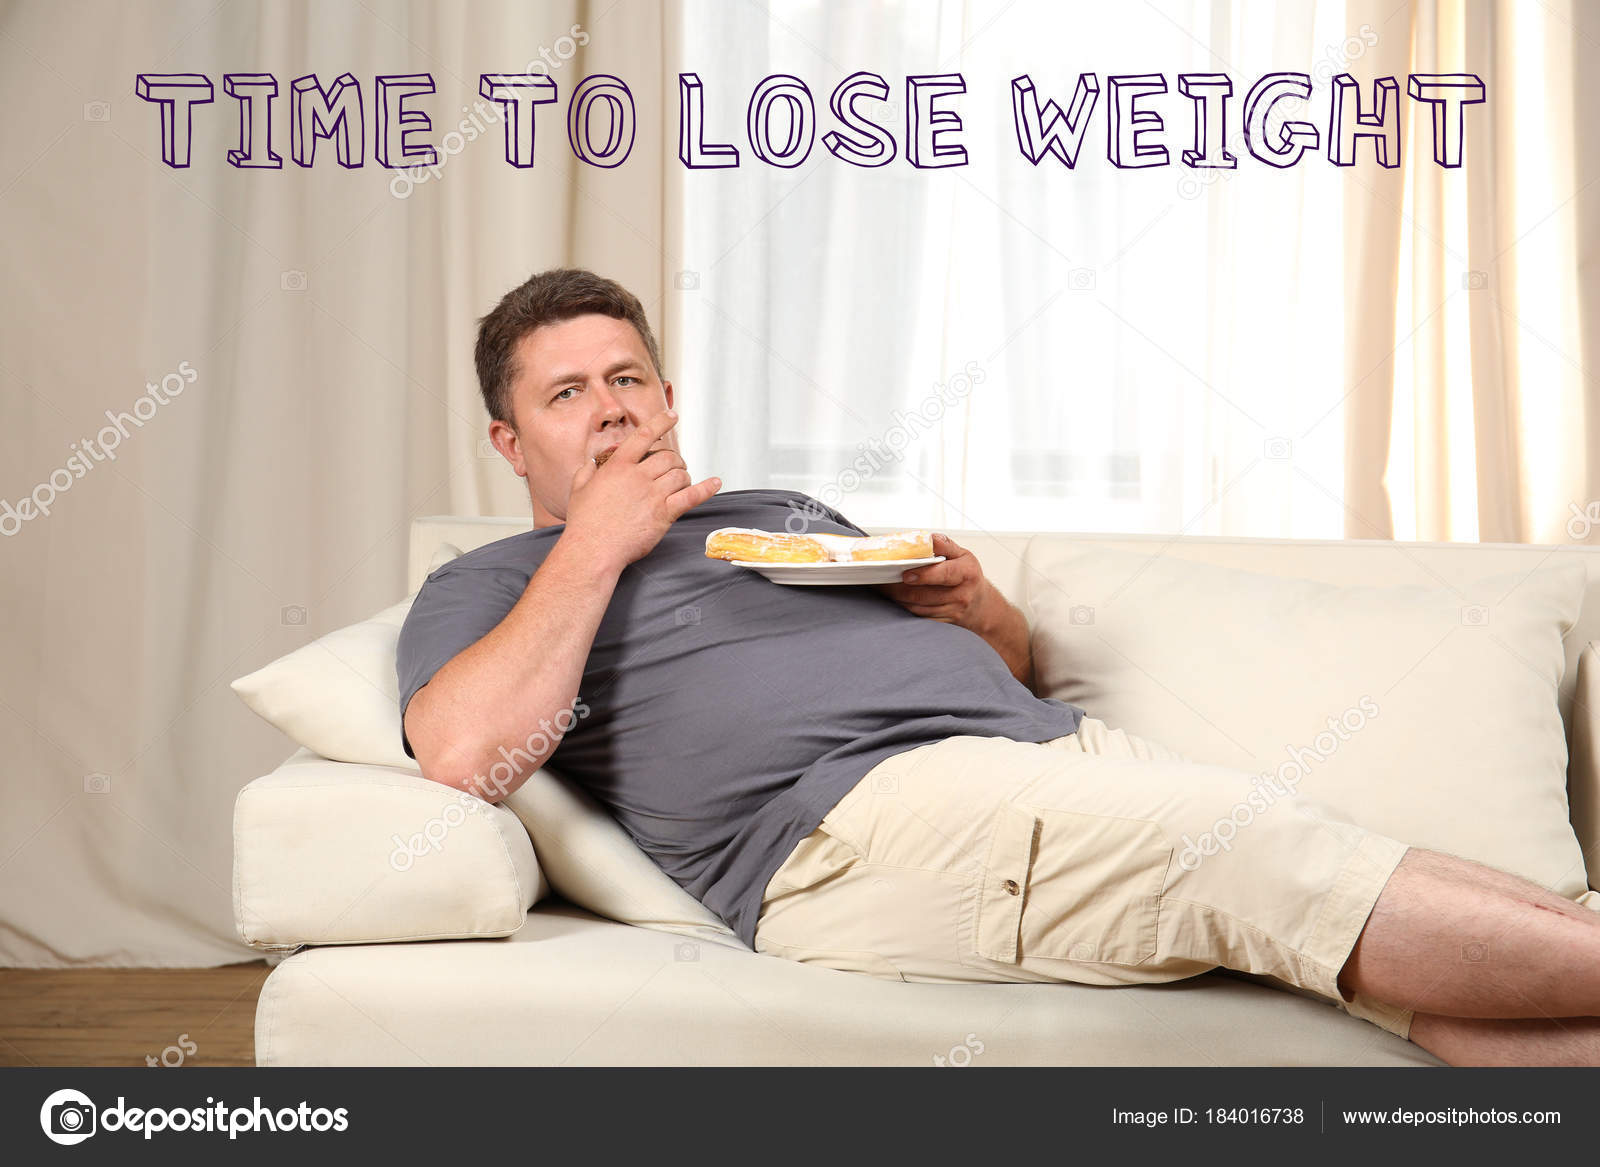 How to lose weight fast just by walking